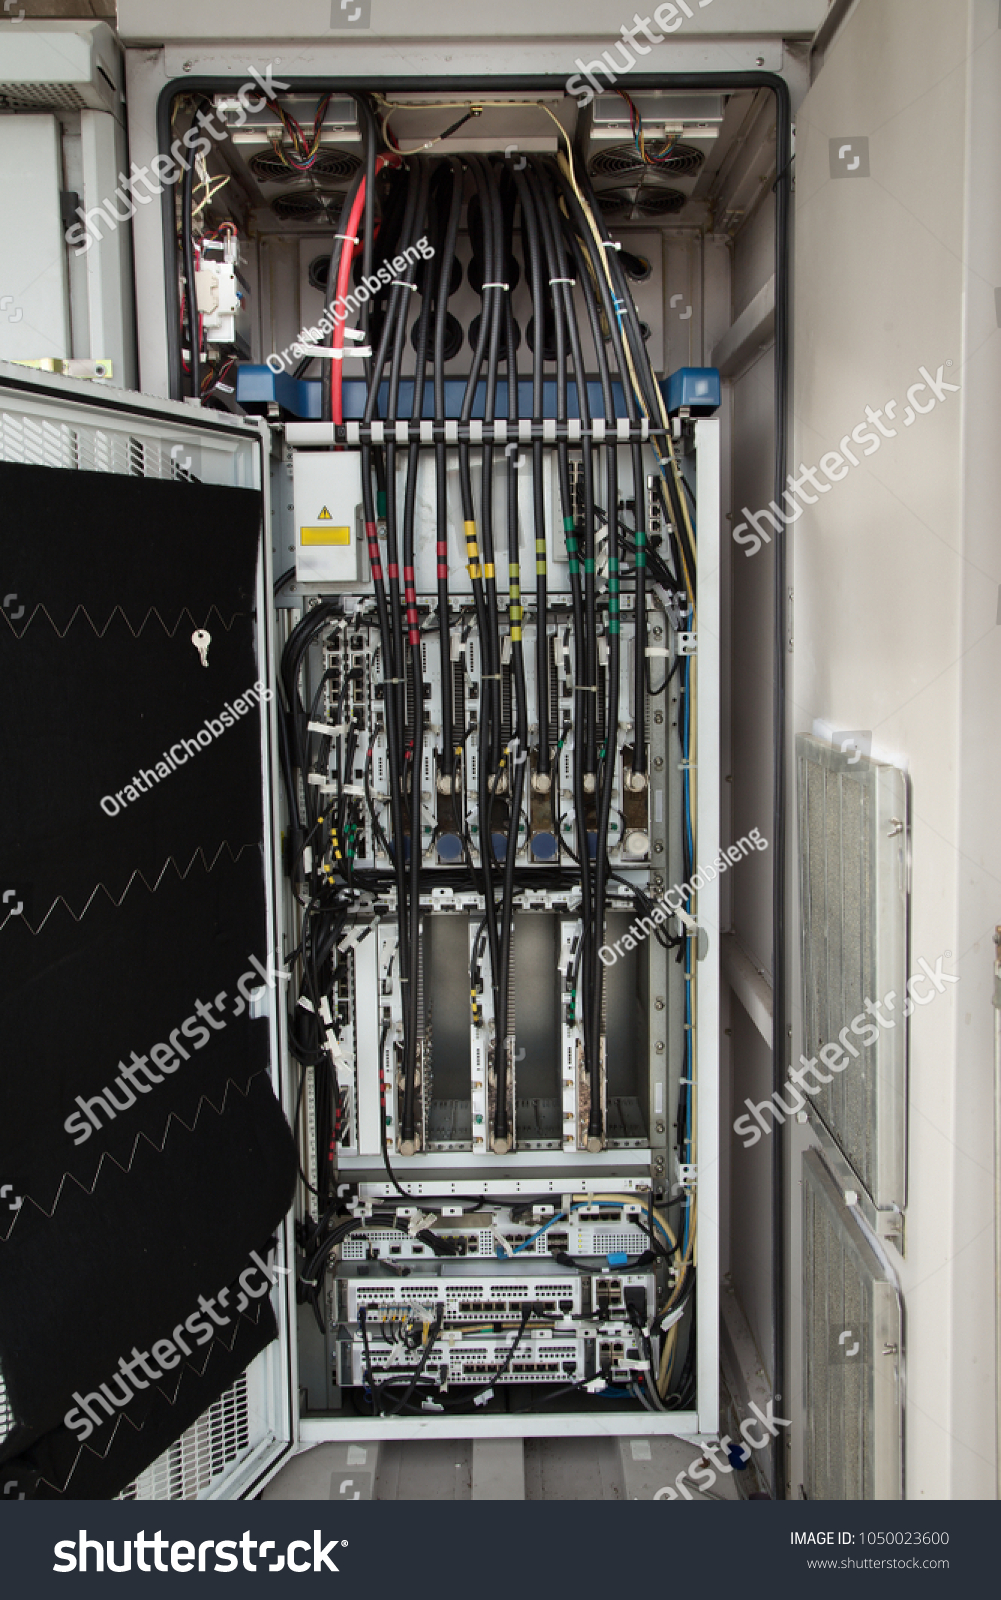 hight resolution of outdoor cabinet wiring diagram for servers and switches are located in the server room of the